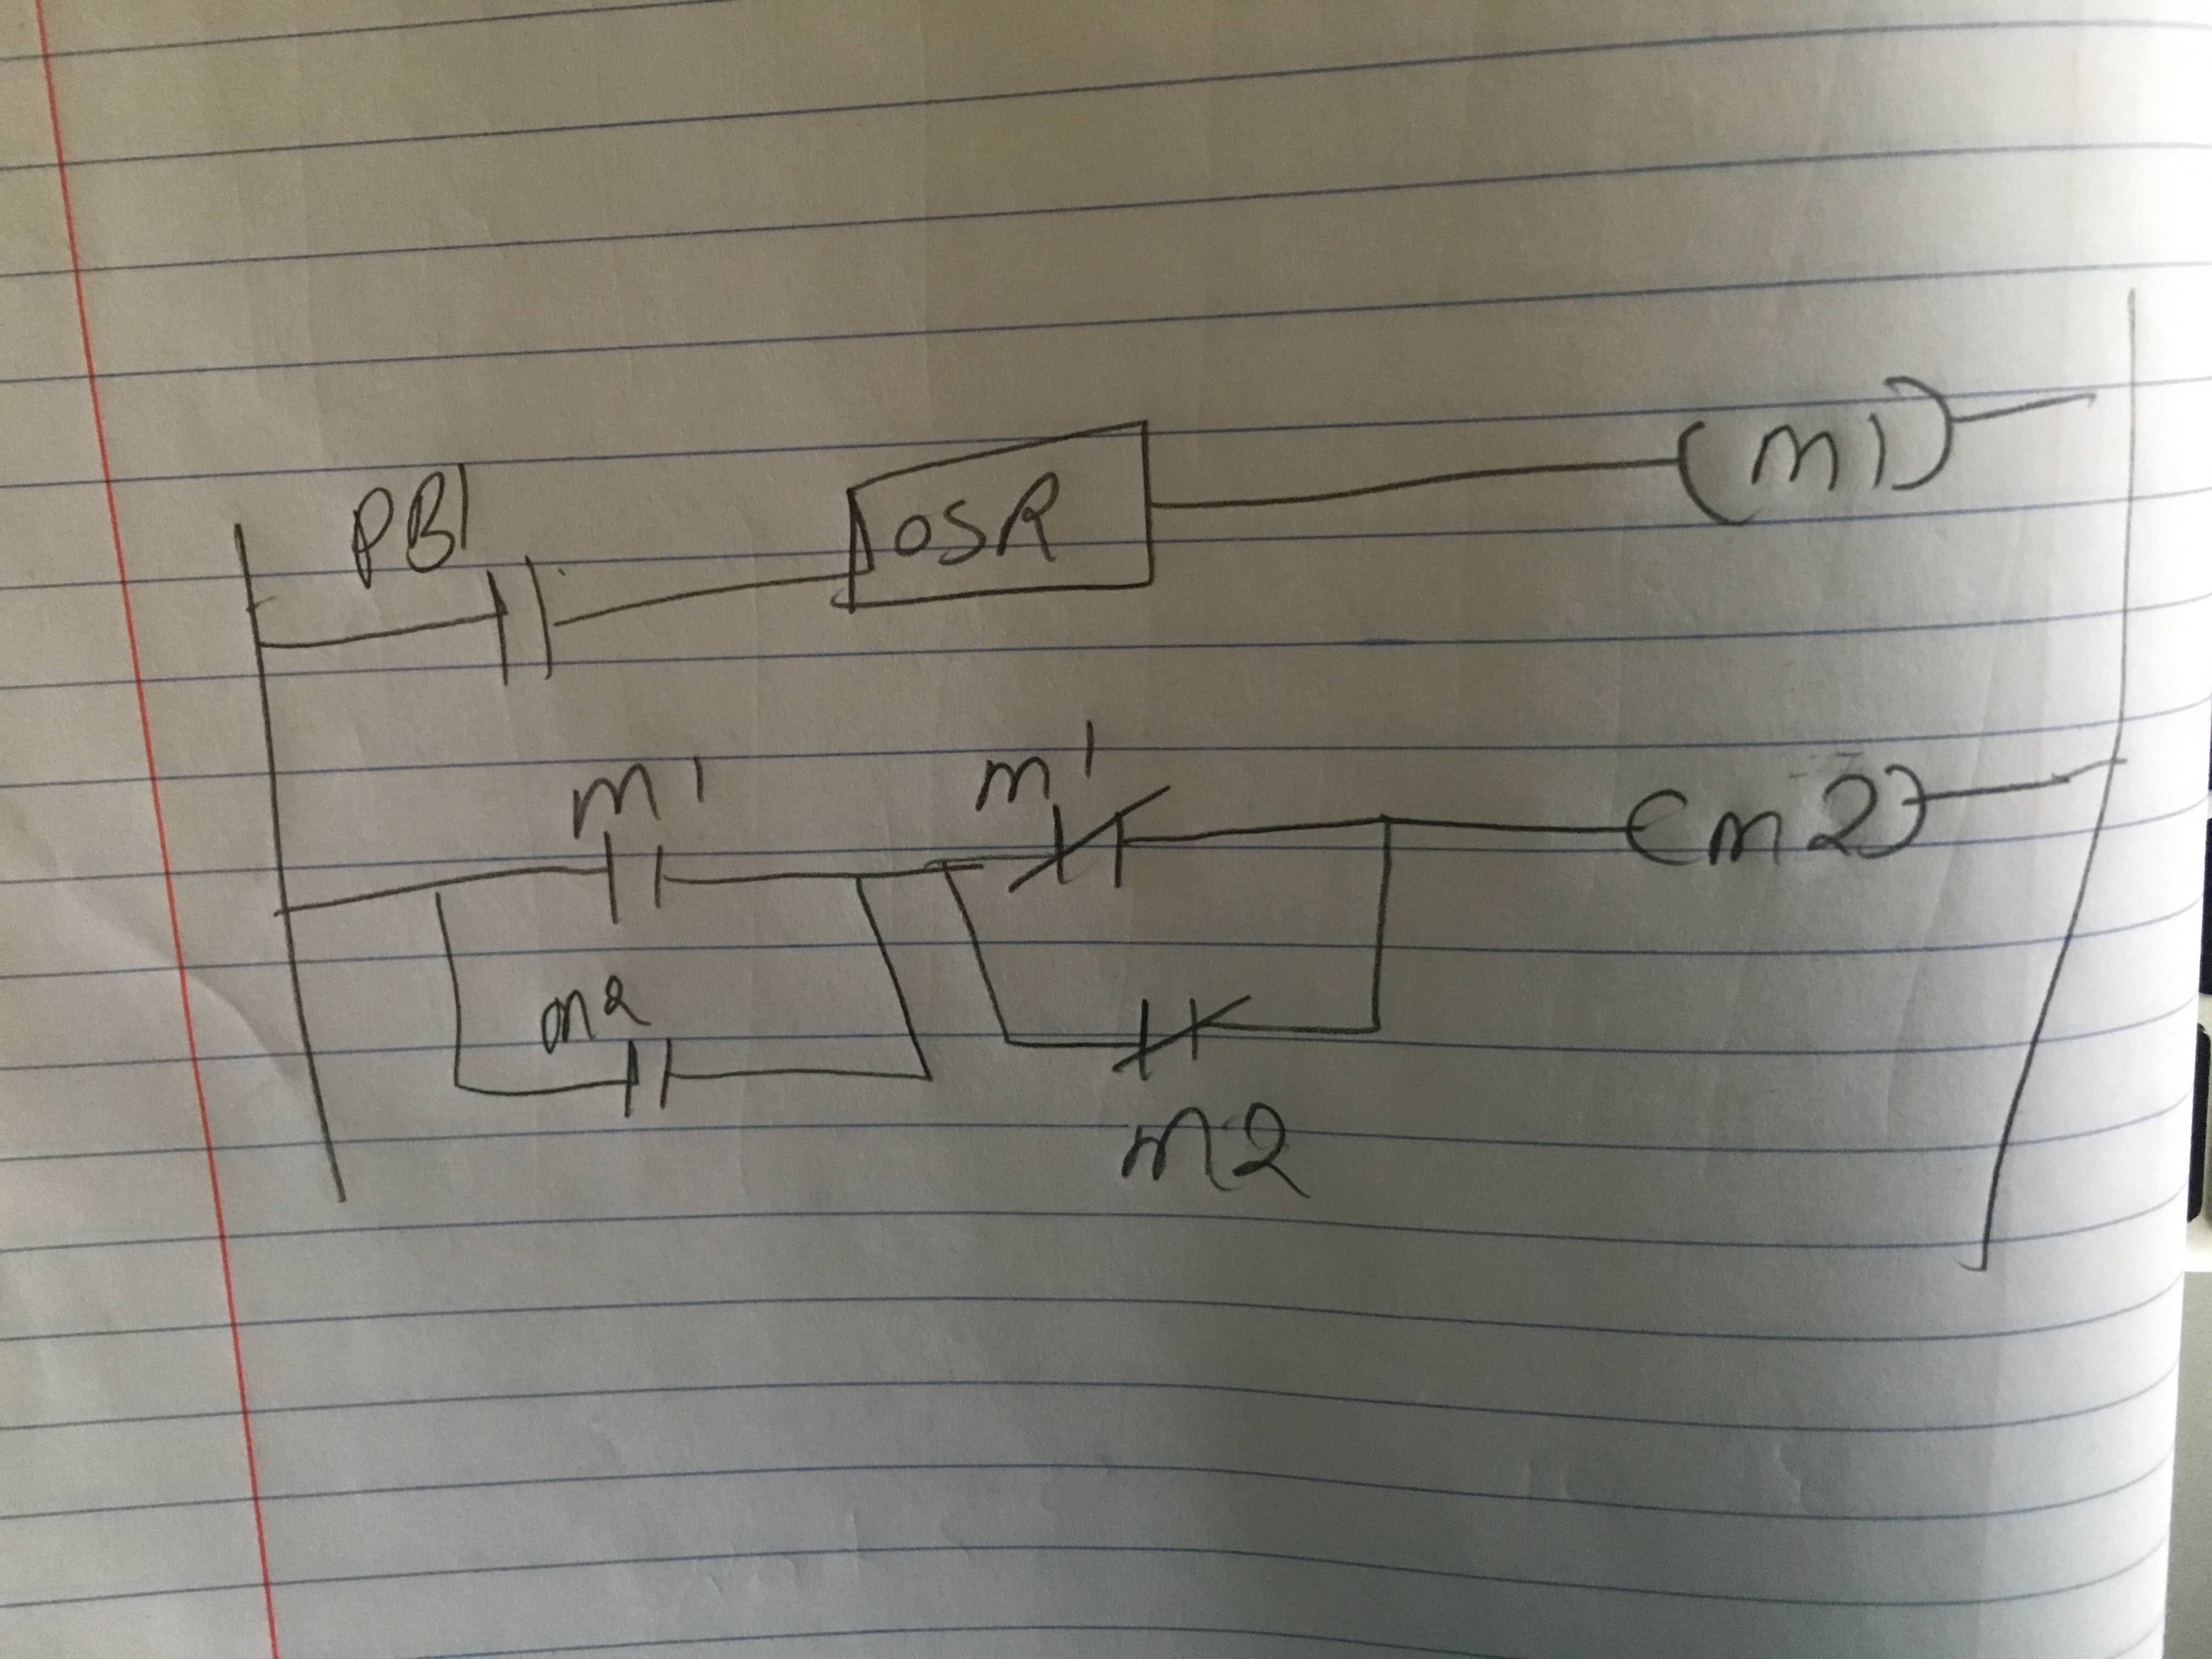 3 way switch ladder diagram trailer electrical wiring south africa plc logic toggle on and off